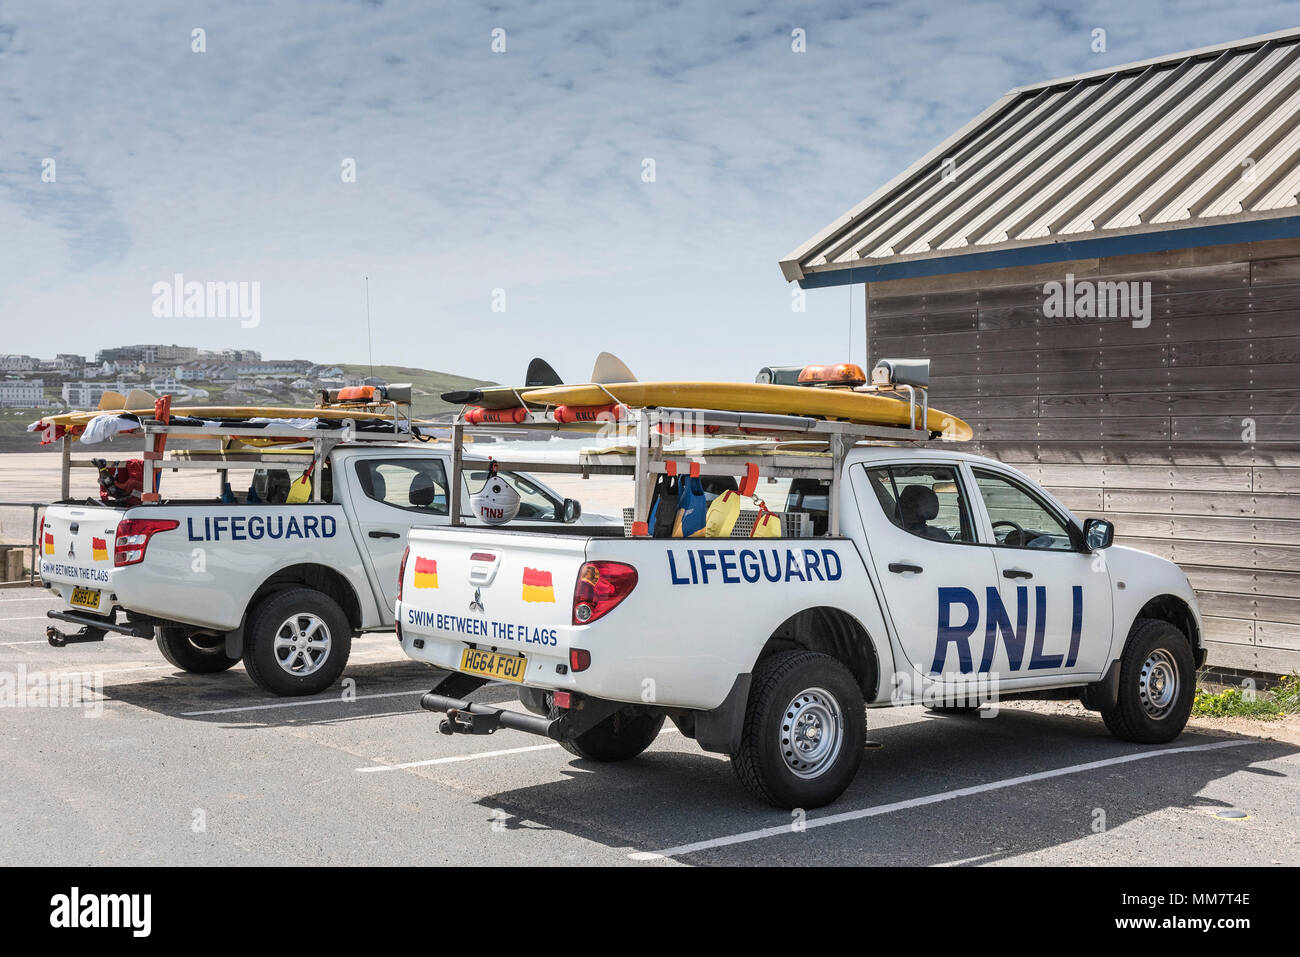 Two RNLI Lifeguard vehicles parked at Fistral in Newquay in Cornwall. - Stock Image